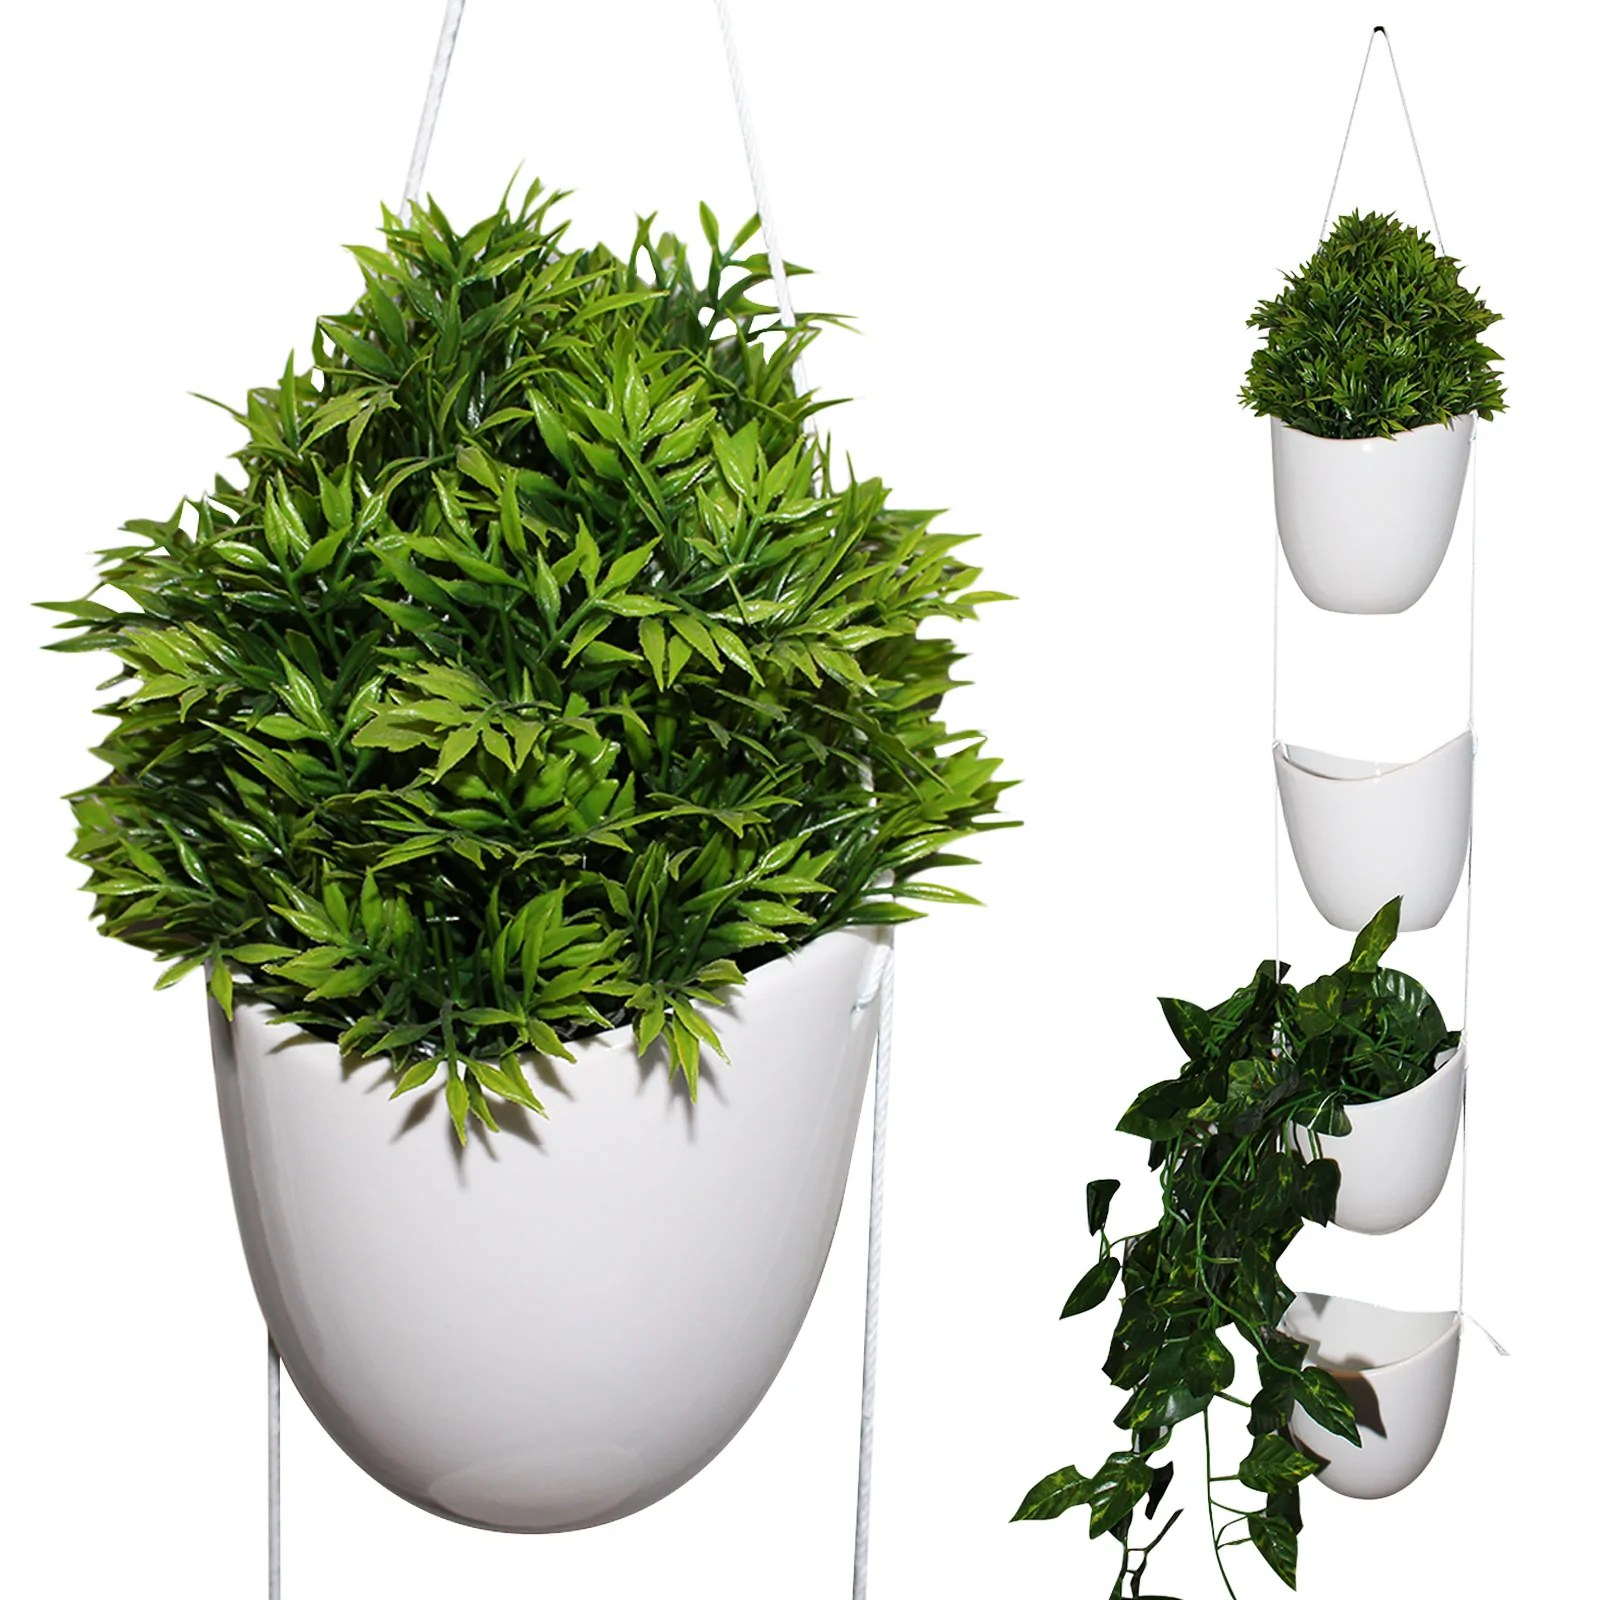 Air Plant Wall Holder Kurtzy 4 Pcs Wall Hanging Planter Air Plant Holder With White Rope Indoor Outdoor Ceramic Planter Flower Pot Vase White Plant Pot For